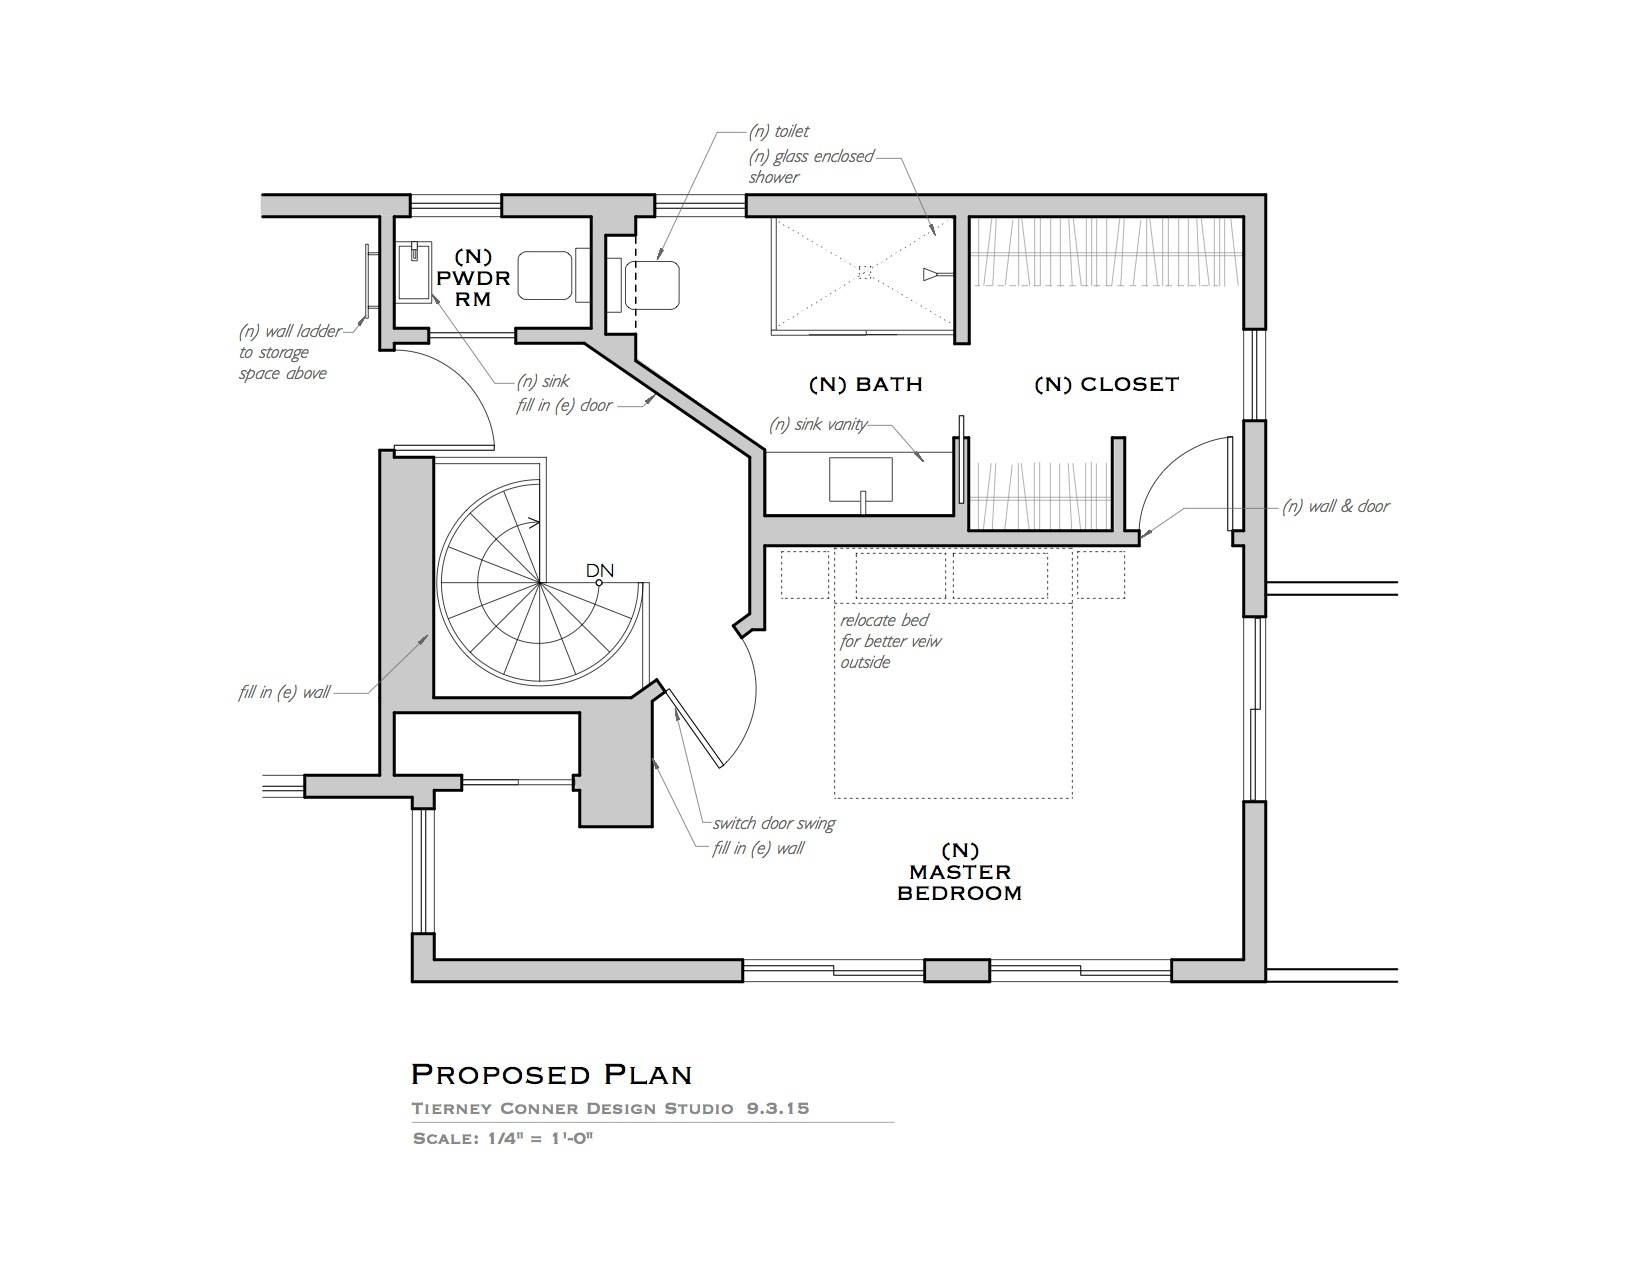 Master bedroom drawing - Above You Can See The Floorplan As It Exists Now And Below Is The Floorplan As It Will Be After We Re Done Click On The Floorplans If You Want To See